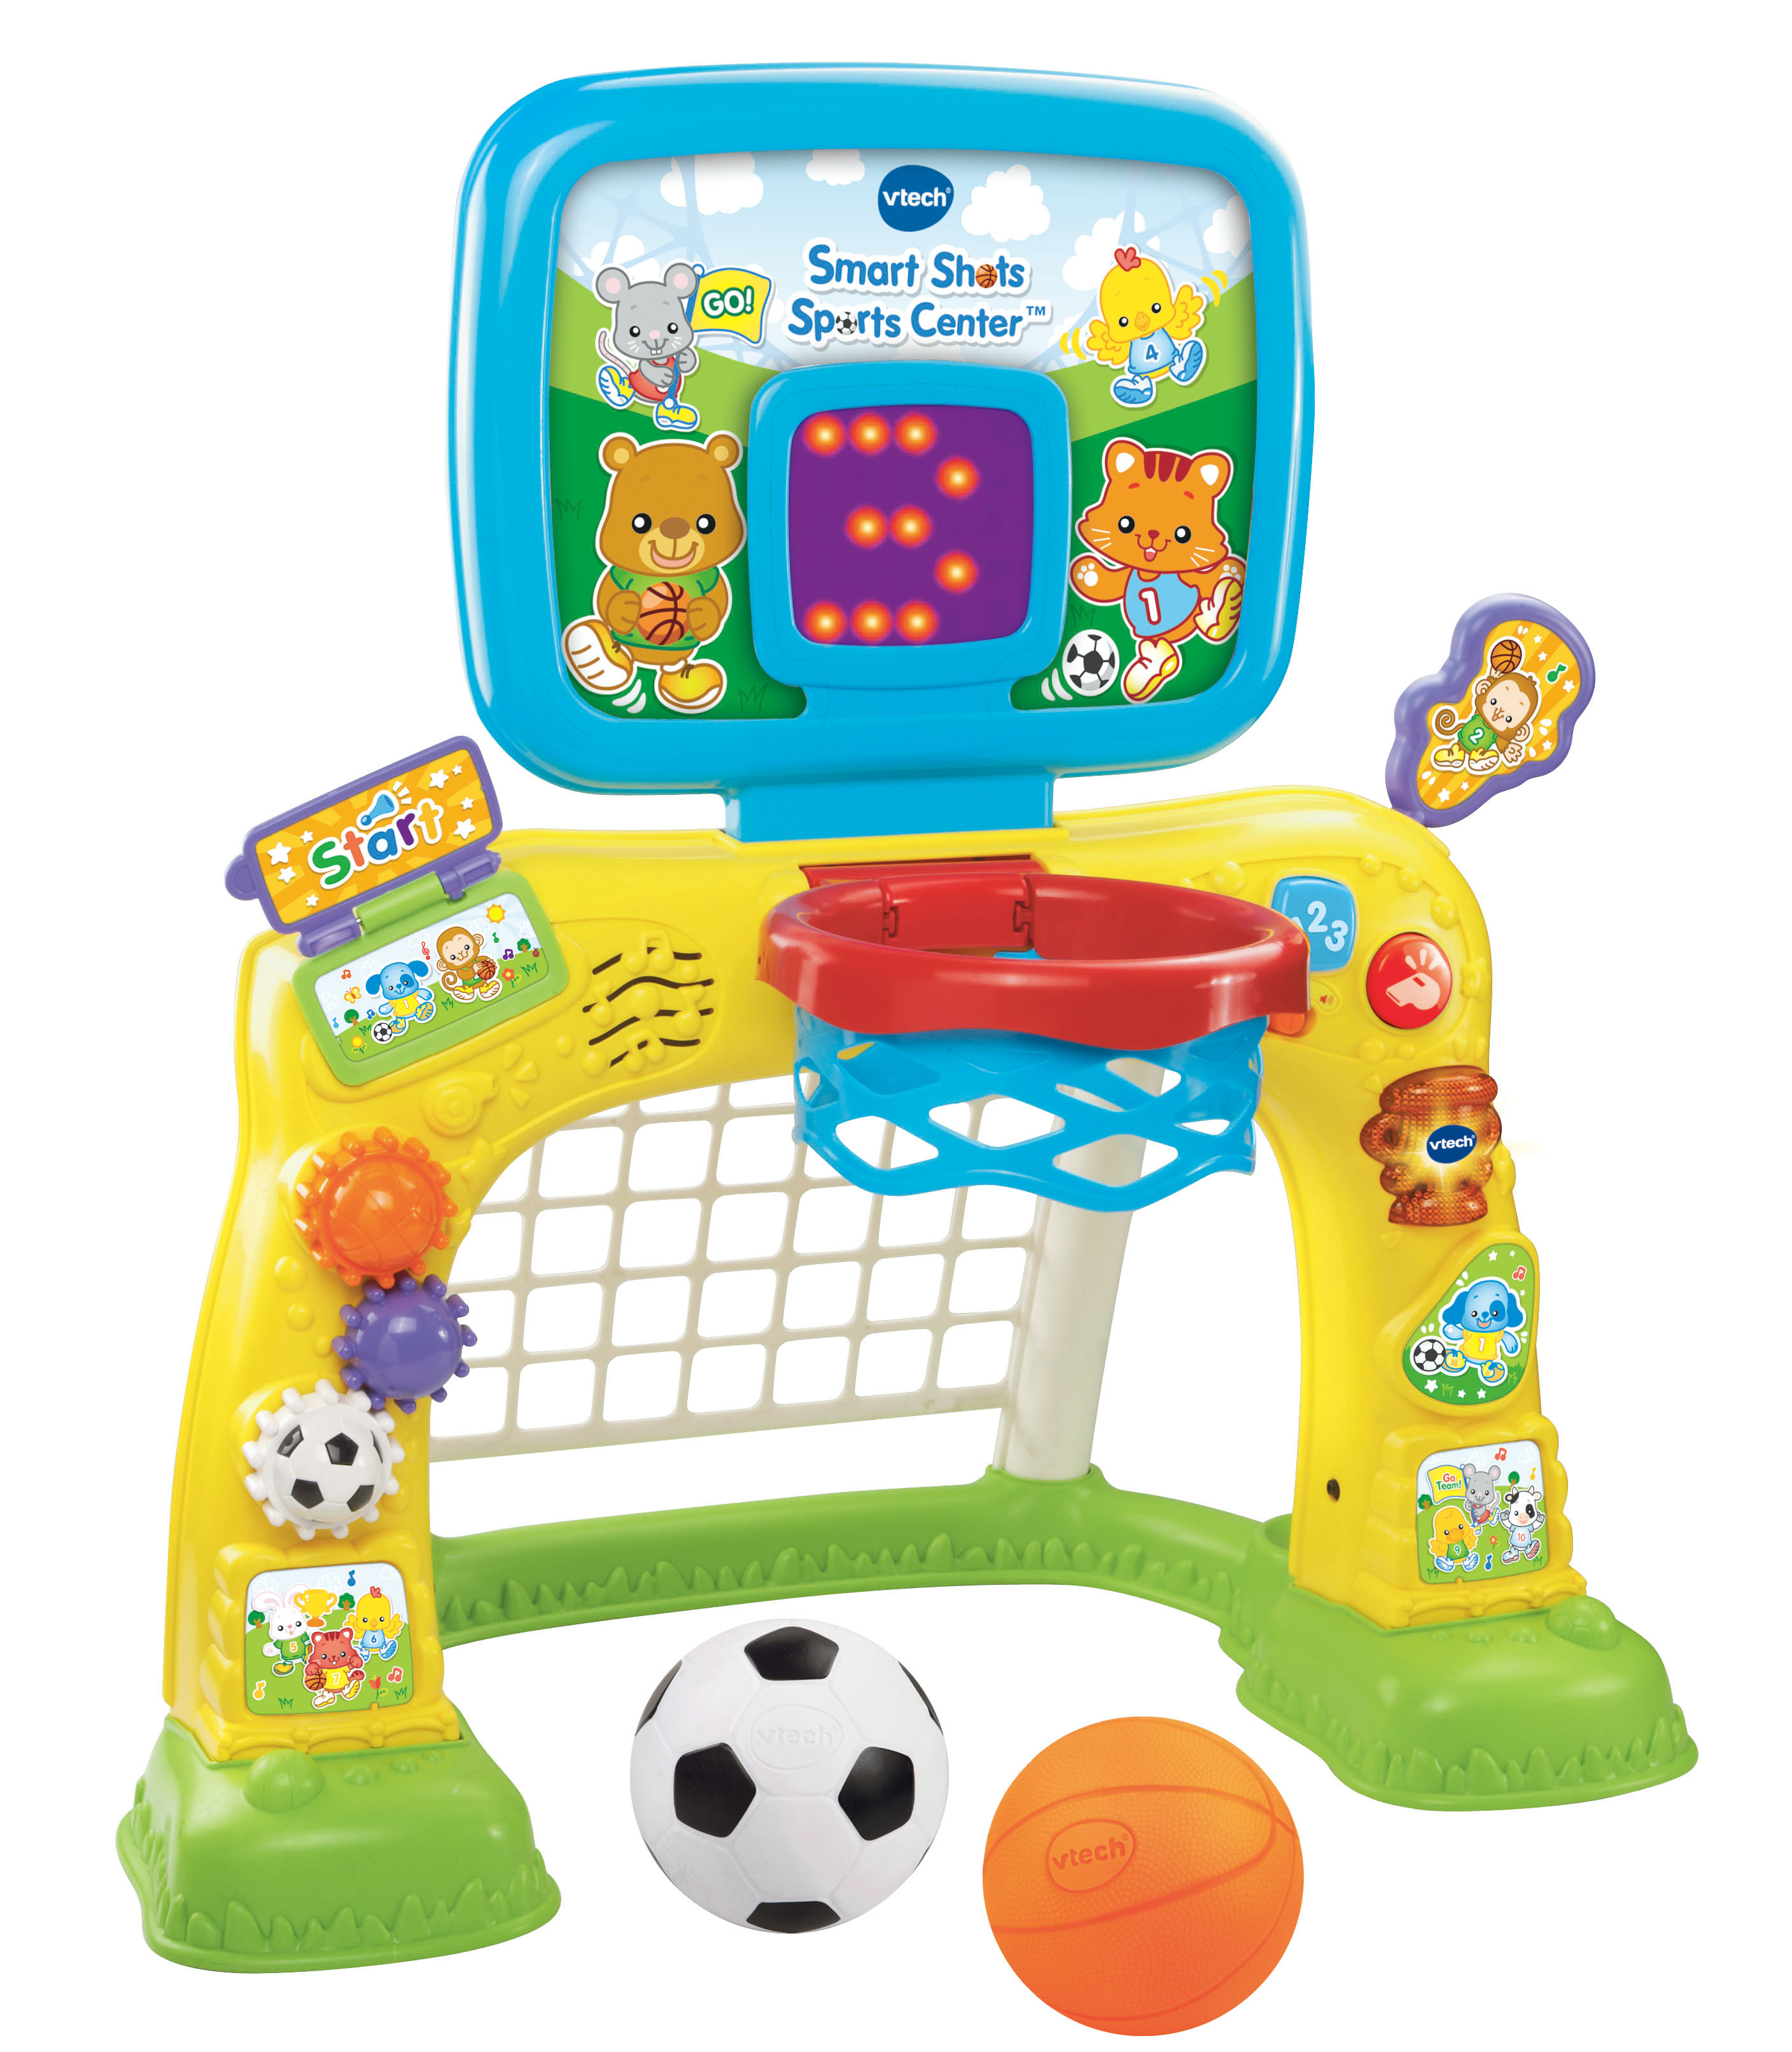 VTech Smart Shots Sports Center Toys for 2 Year Old Boys